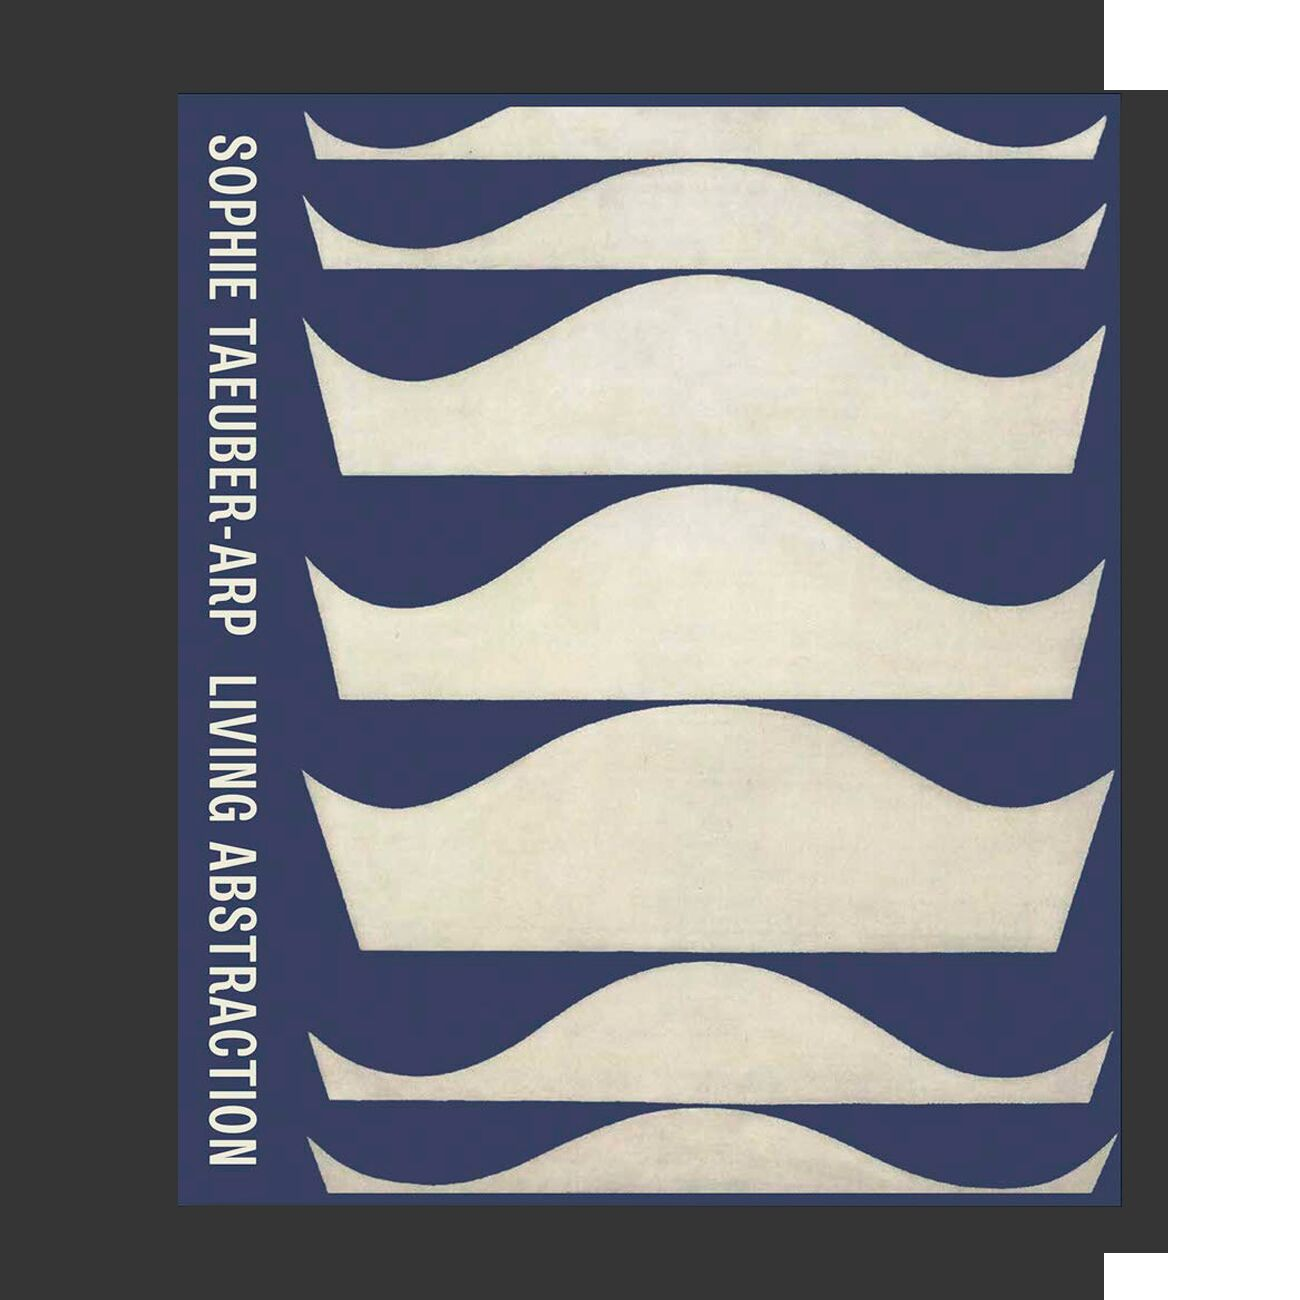 Sophie Taeuber-Arp: Living Abstraction